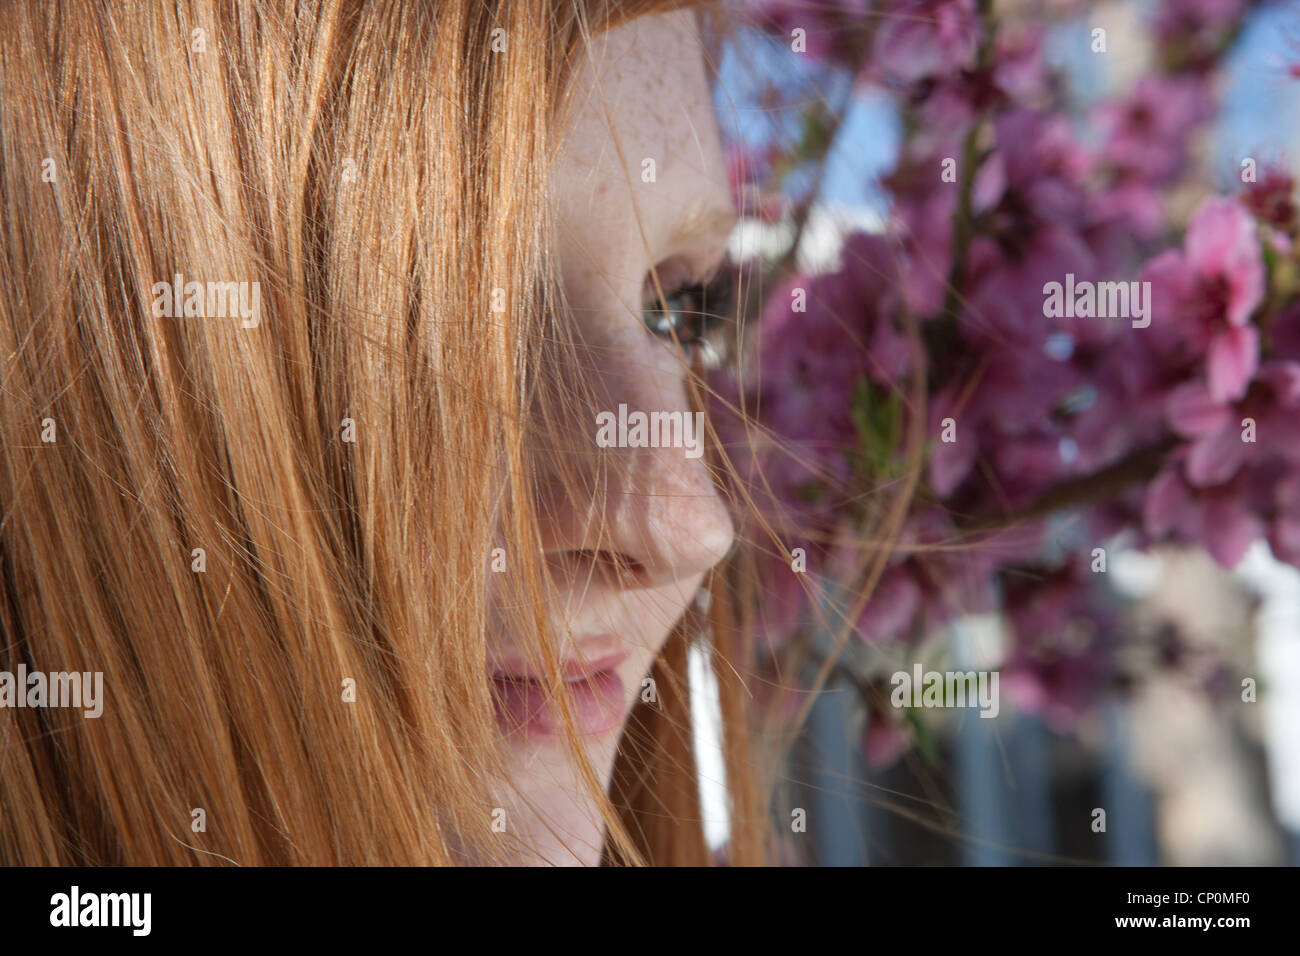 profile of woman with red hair and cherry blossoms in background. - Stock Image